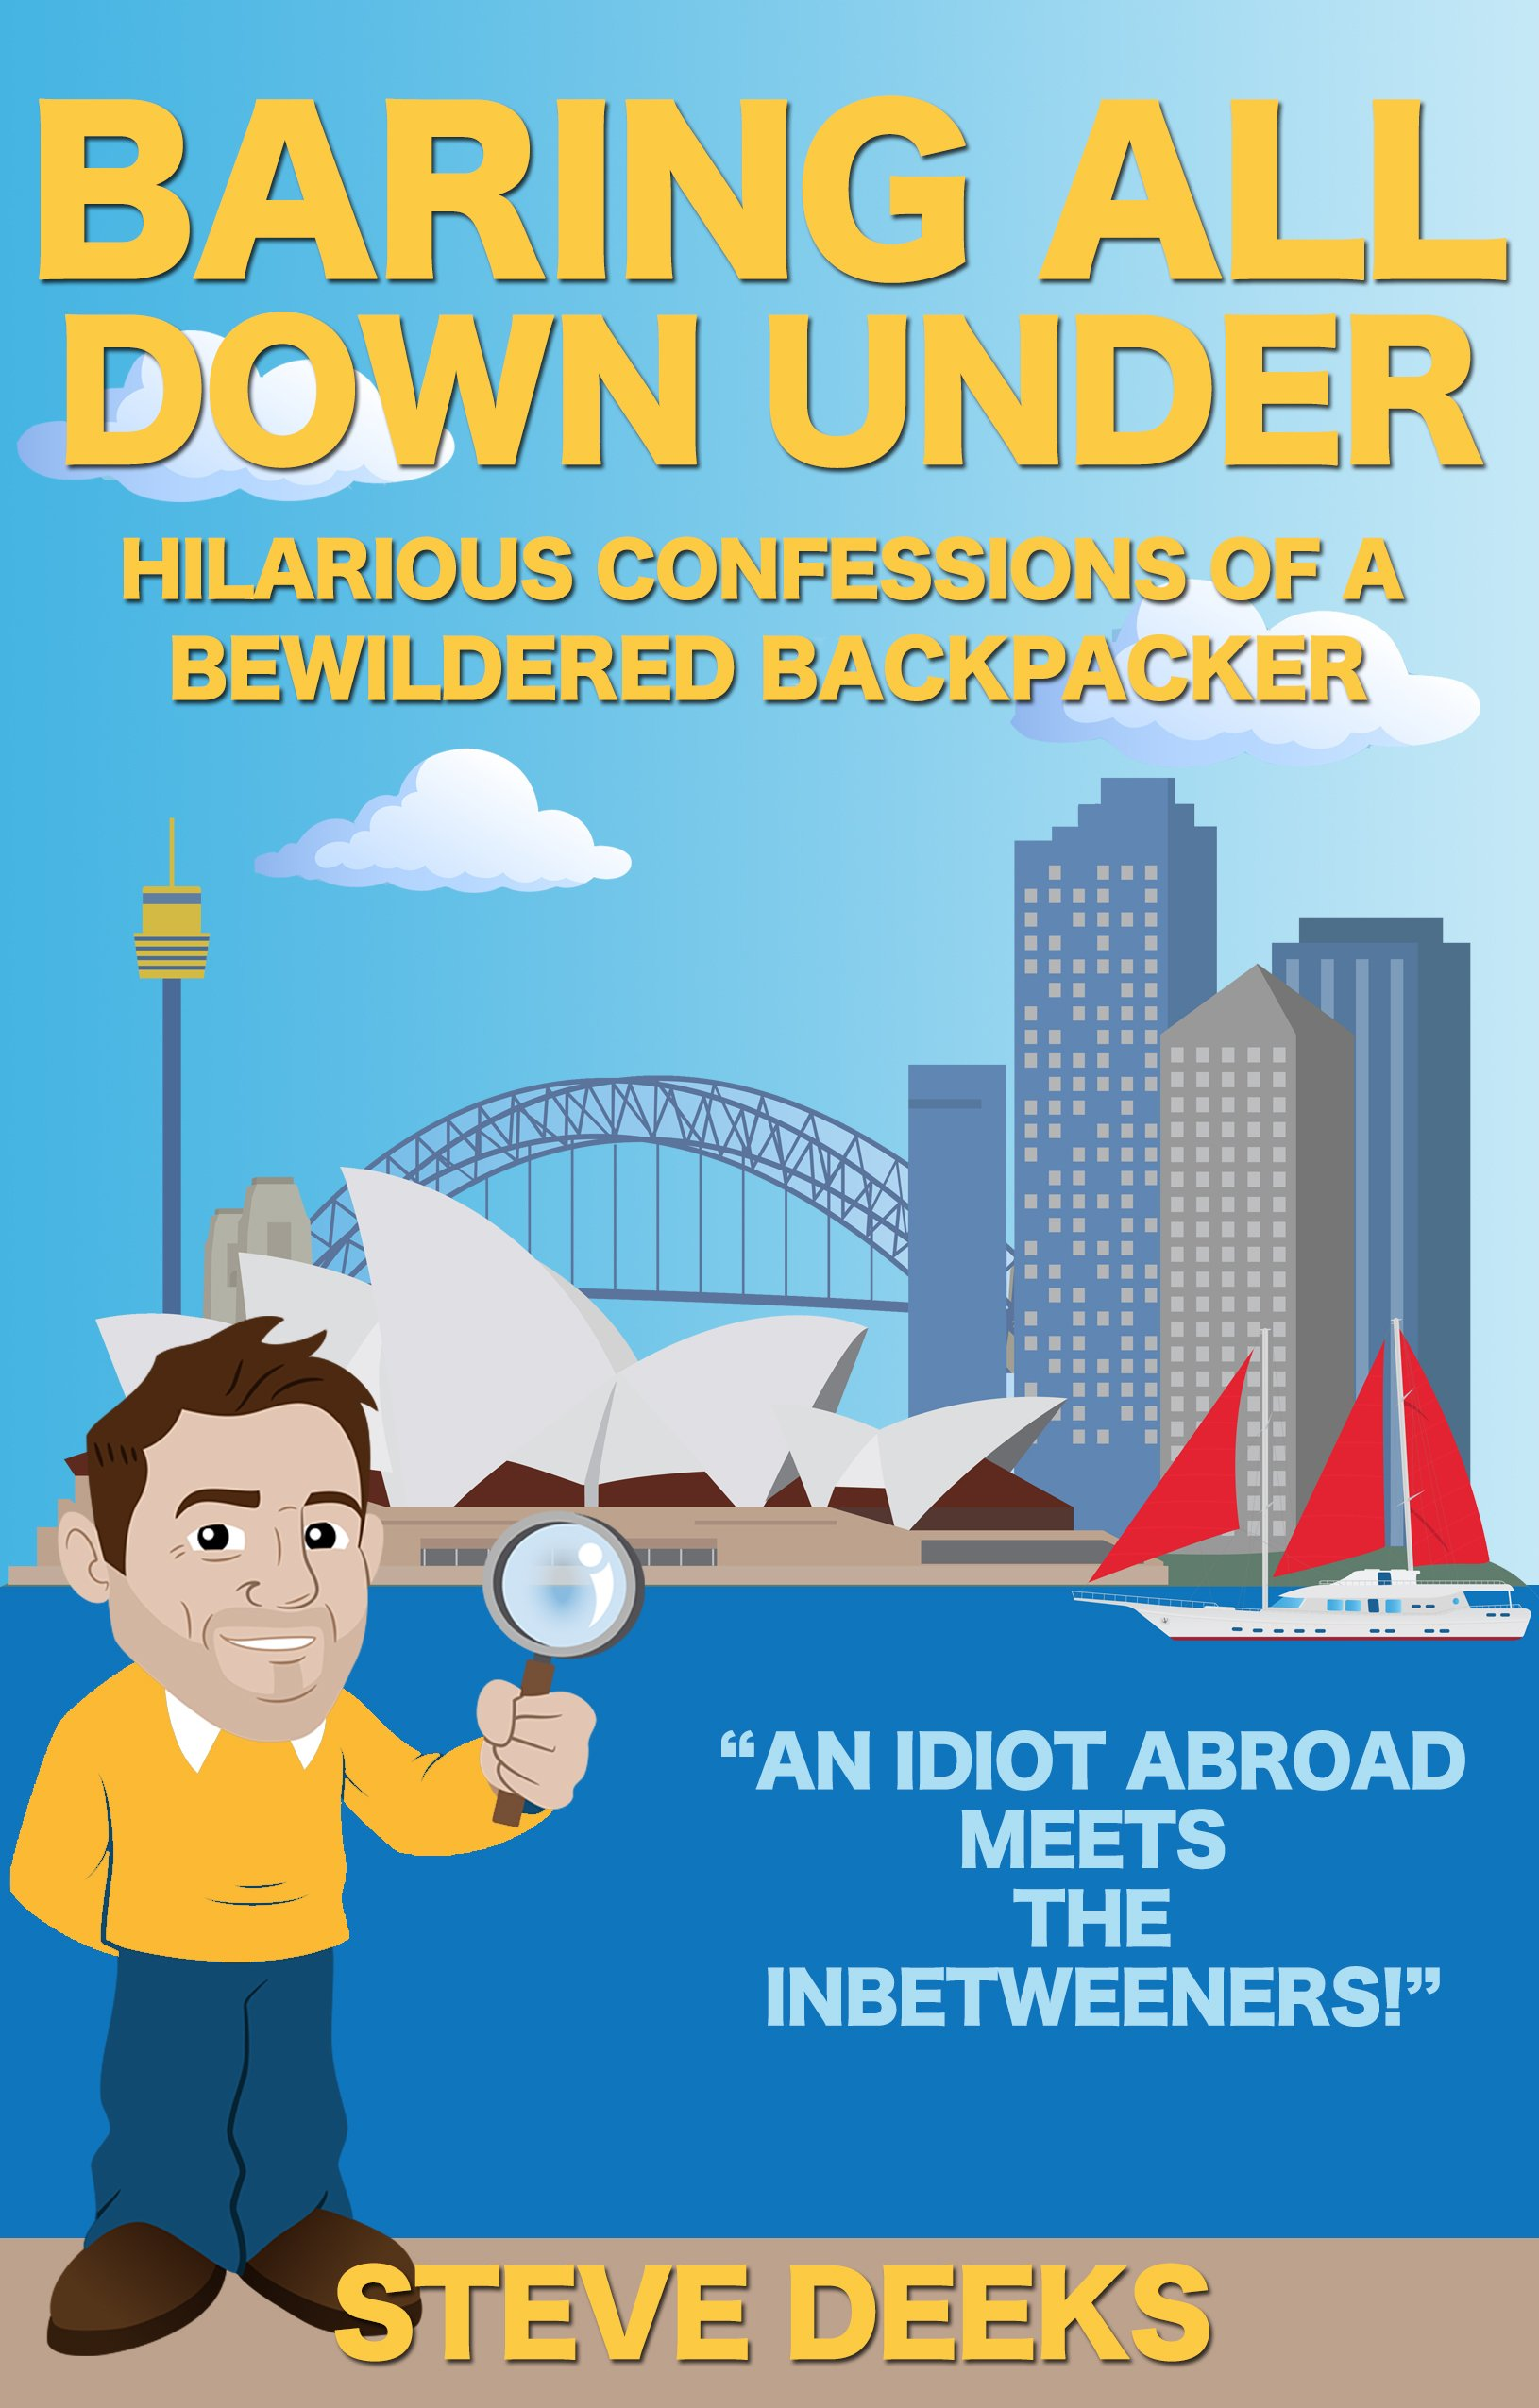 Adventures of a bewildered backpacker in australia